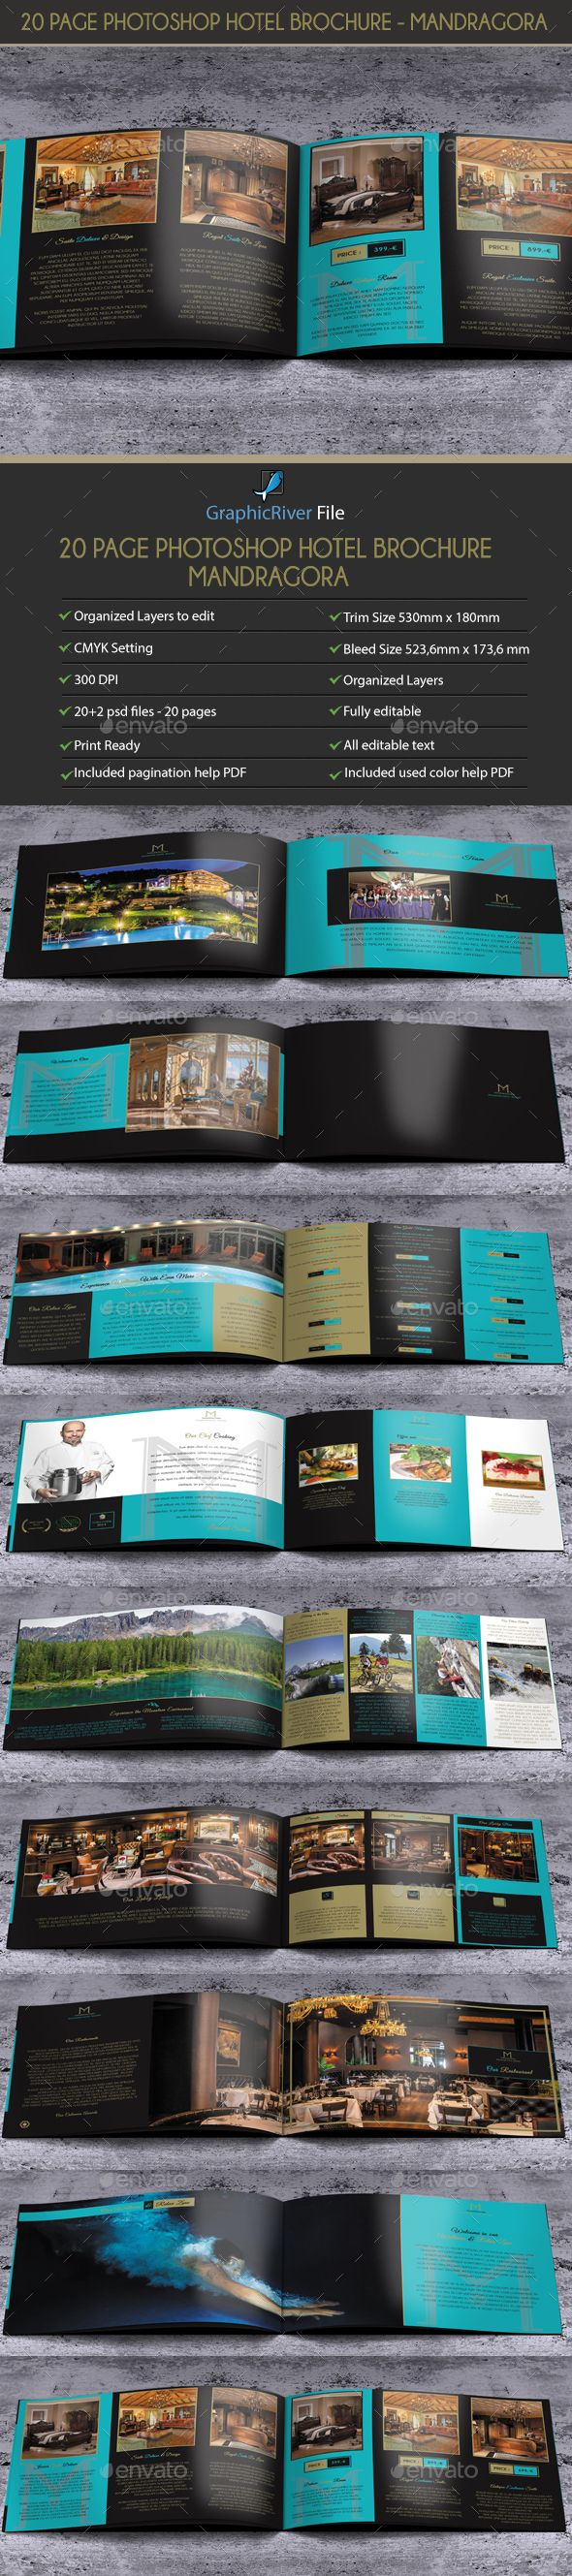 20 Pages PSD Hotel Brochure - Mandragora | Hotel brochure ...